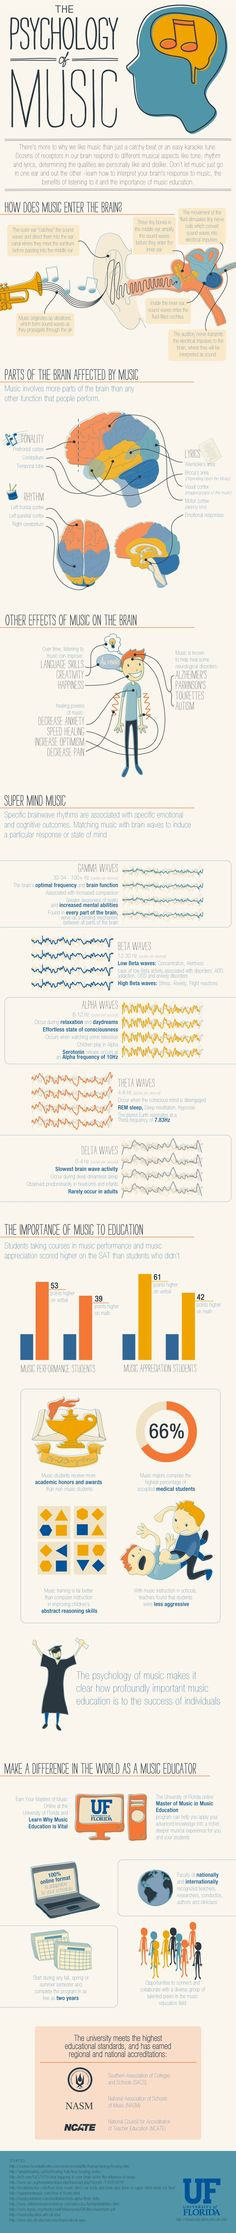 "Infographic about ""The Psychology of Music"" - from University of Florida Musico terapia - psicologia della musica Elementary Music, Elementary Schools, Teaching Music, Teaching Tools, Teaching Biology, Teaching Class, Listening To Music, Music Therapy, Music Classroom"